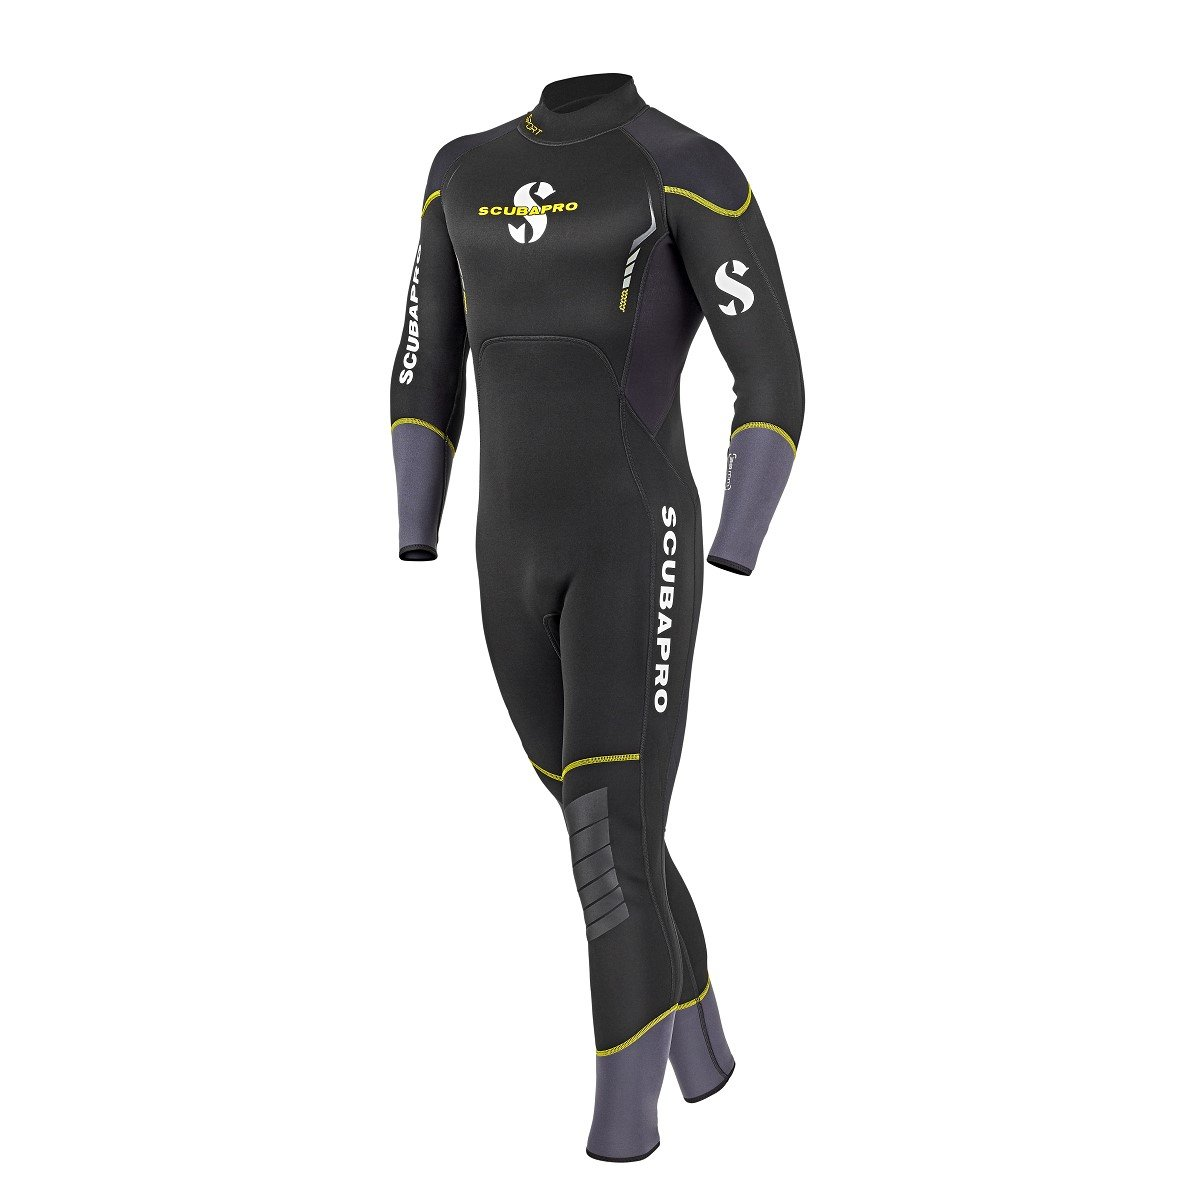 Men's 3mm Sport Full Suit